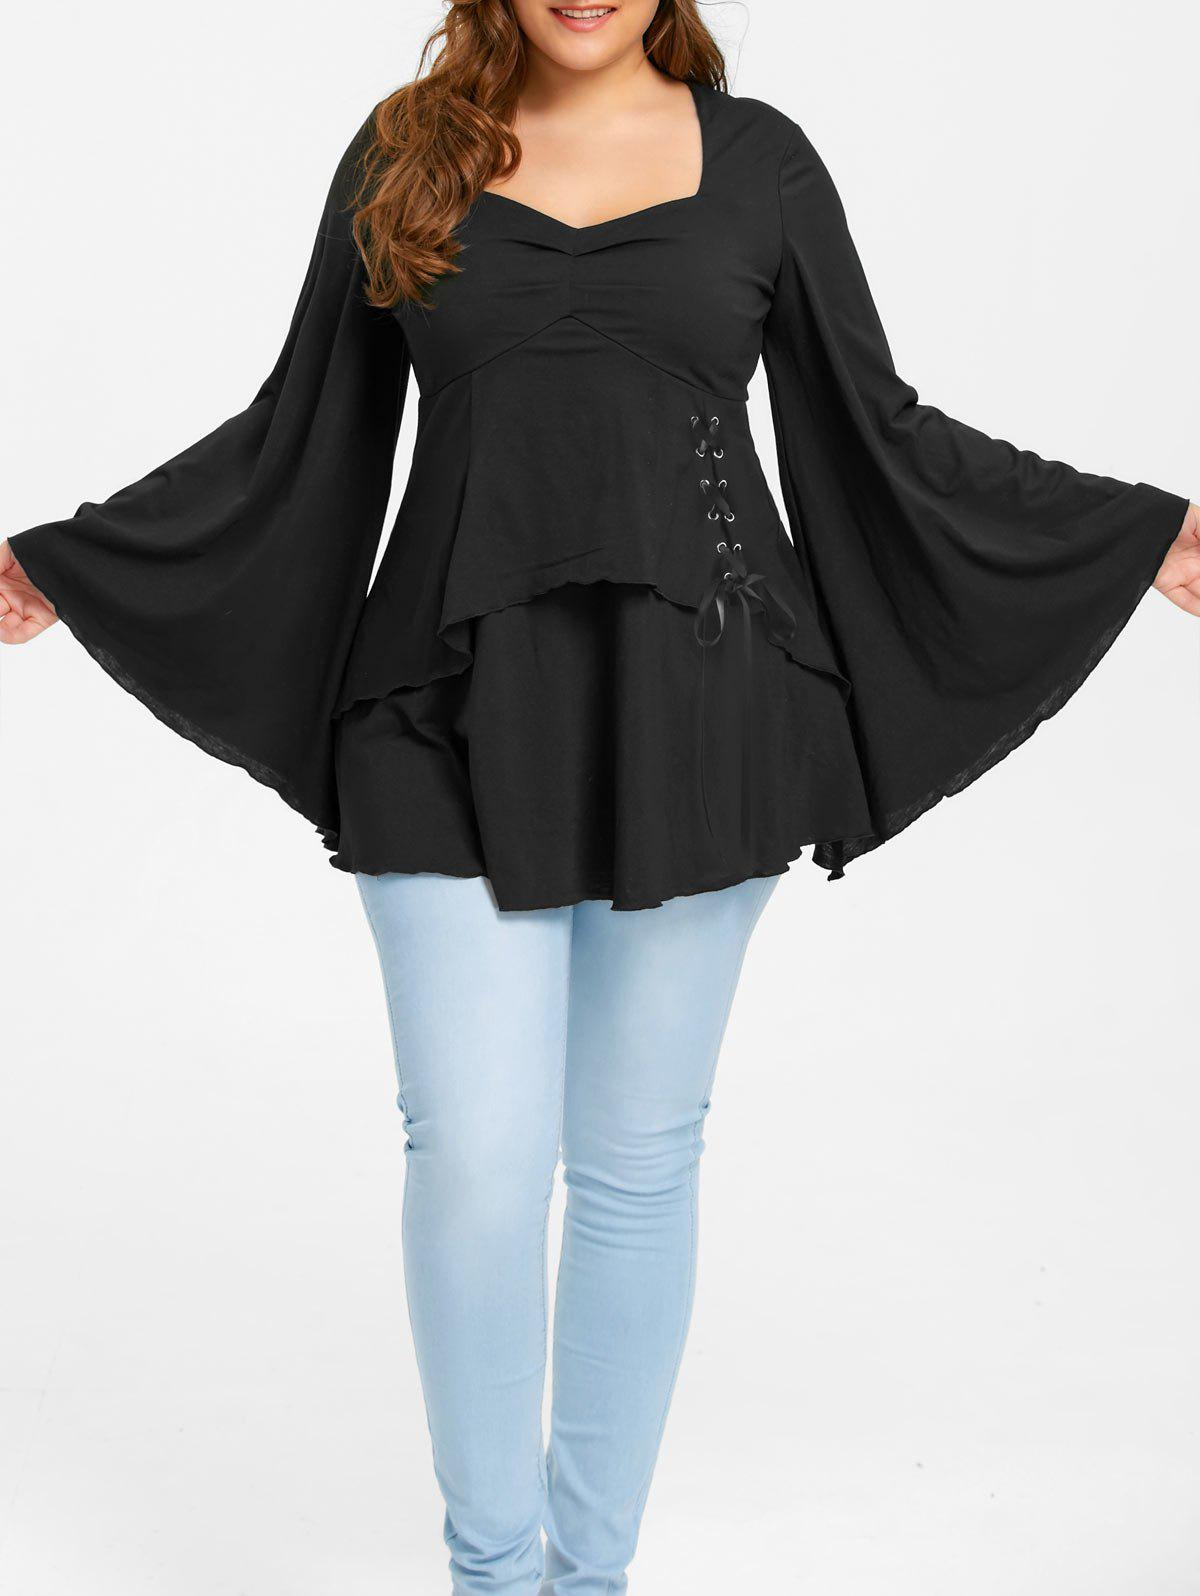 Plus Size Lace Up Flare Sleeve TopWOMEN<br><br>Size: 3XL; Color: BLACK; Material: Polyester,Spandex; Shirt Length: Long; Sleeve Length: Full; Collar: Sweetheart Neck; Style: Casual; Season: Fall,Spring; Pattern Type: Solid; Weight: 0.4400kg; Package Contents: 1 x Top;